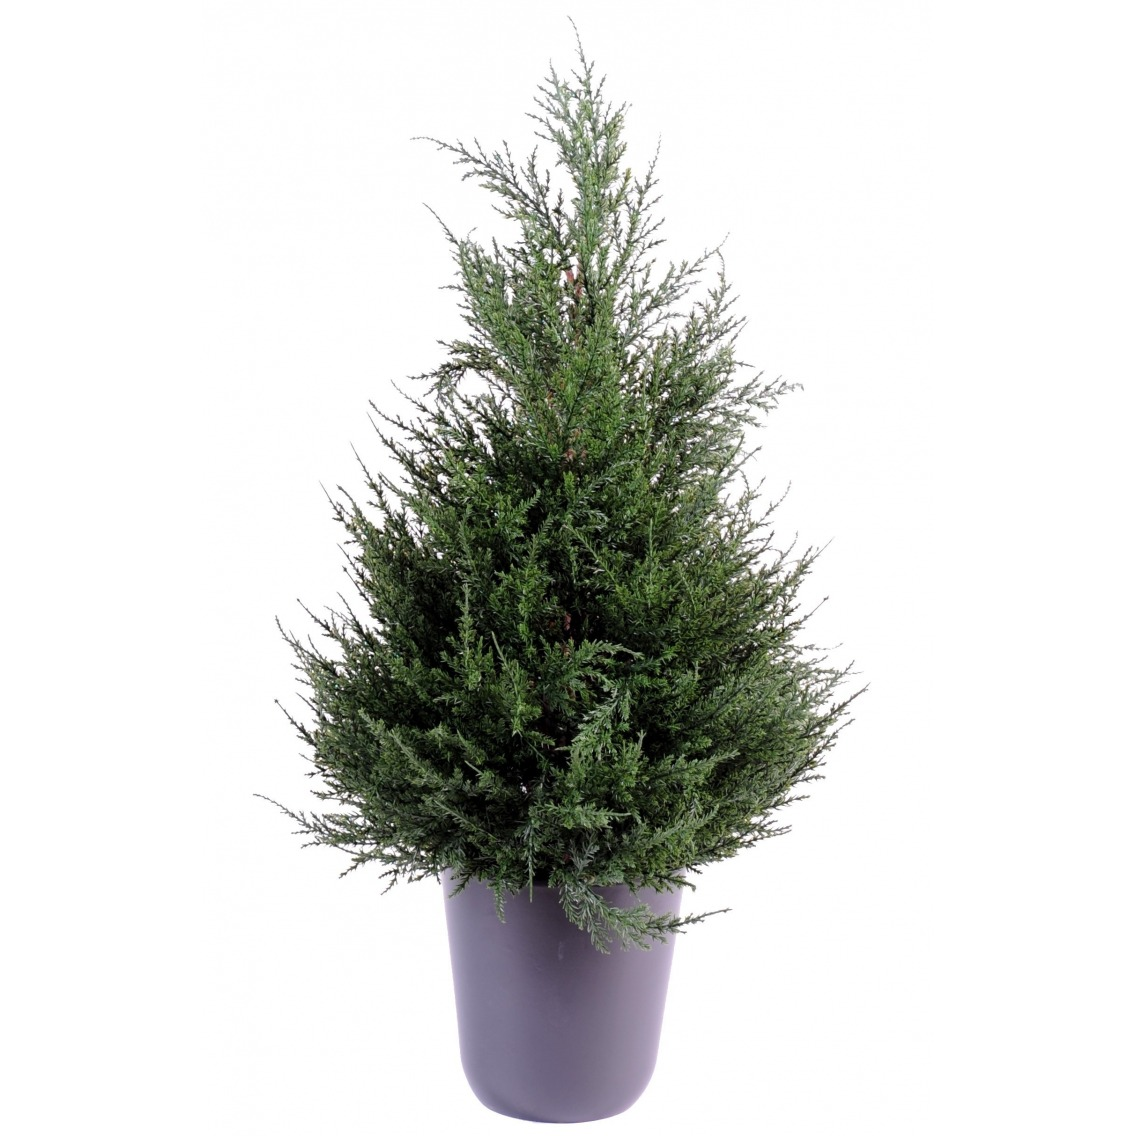 Cyprès juniperus en pot